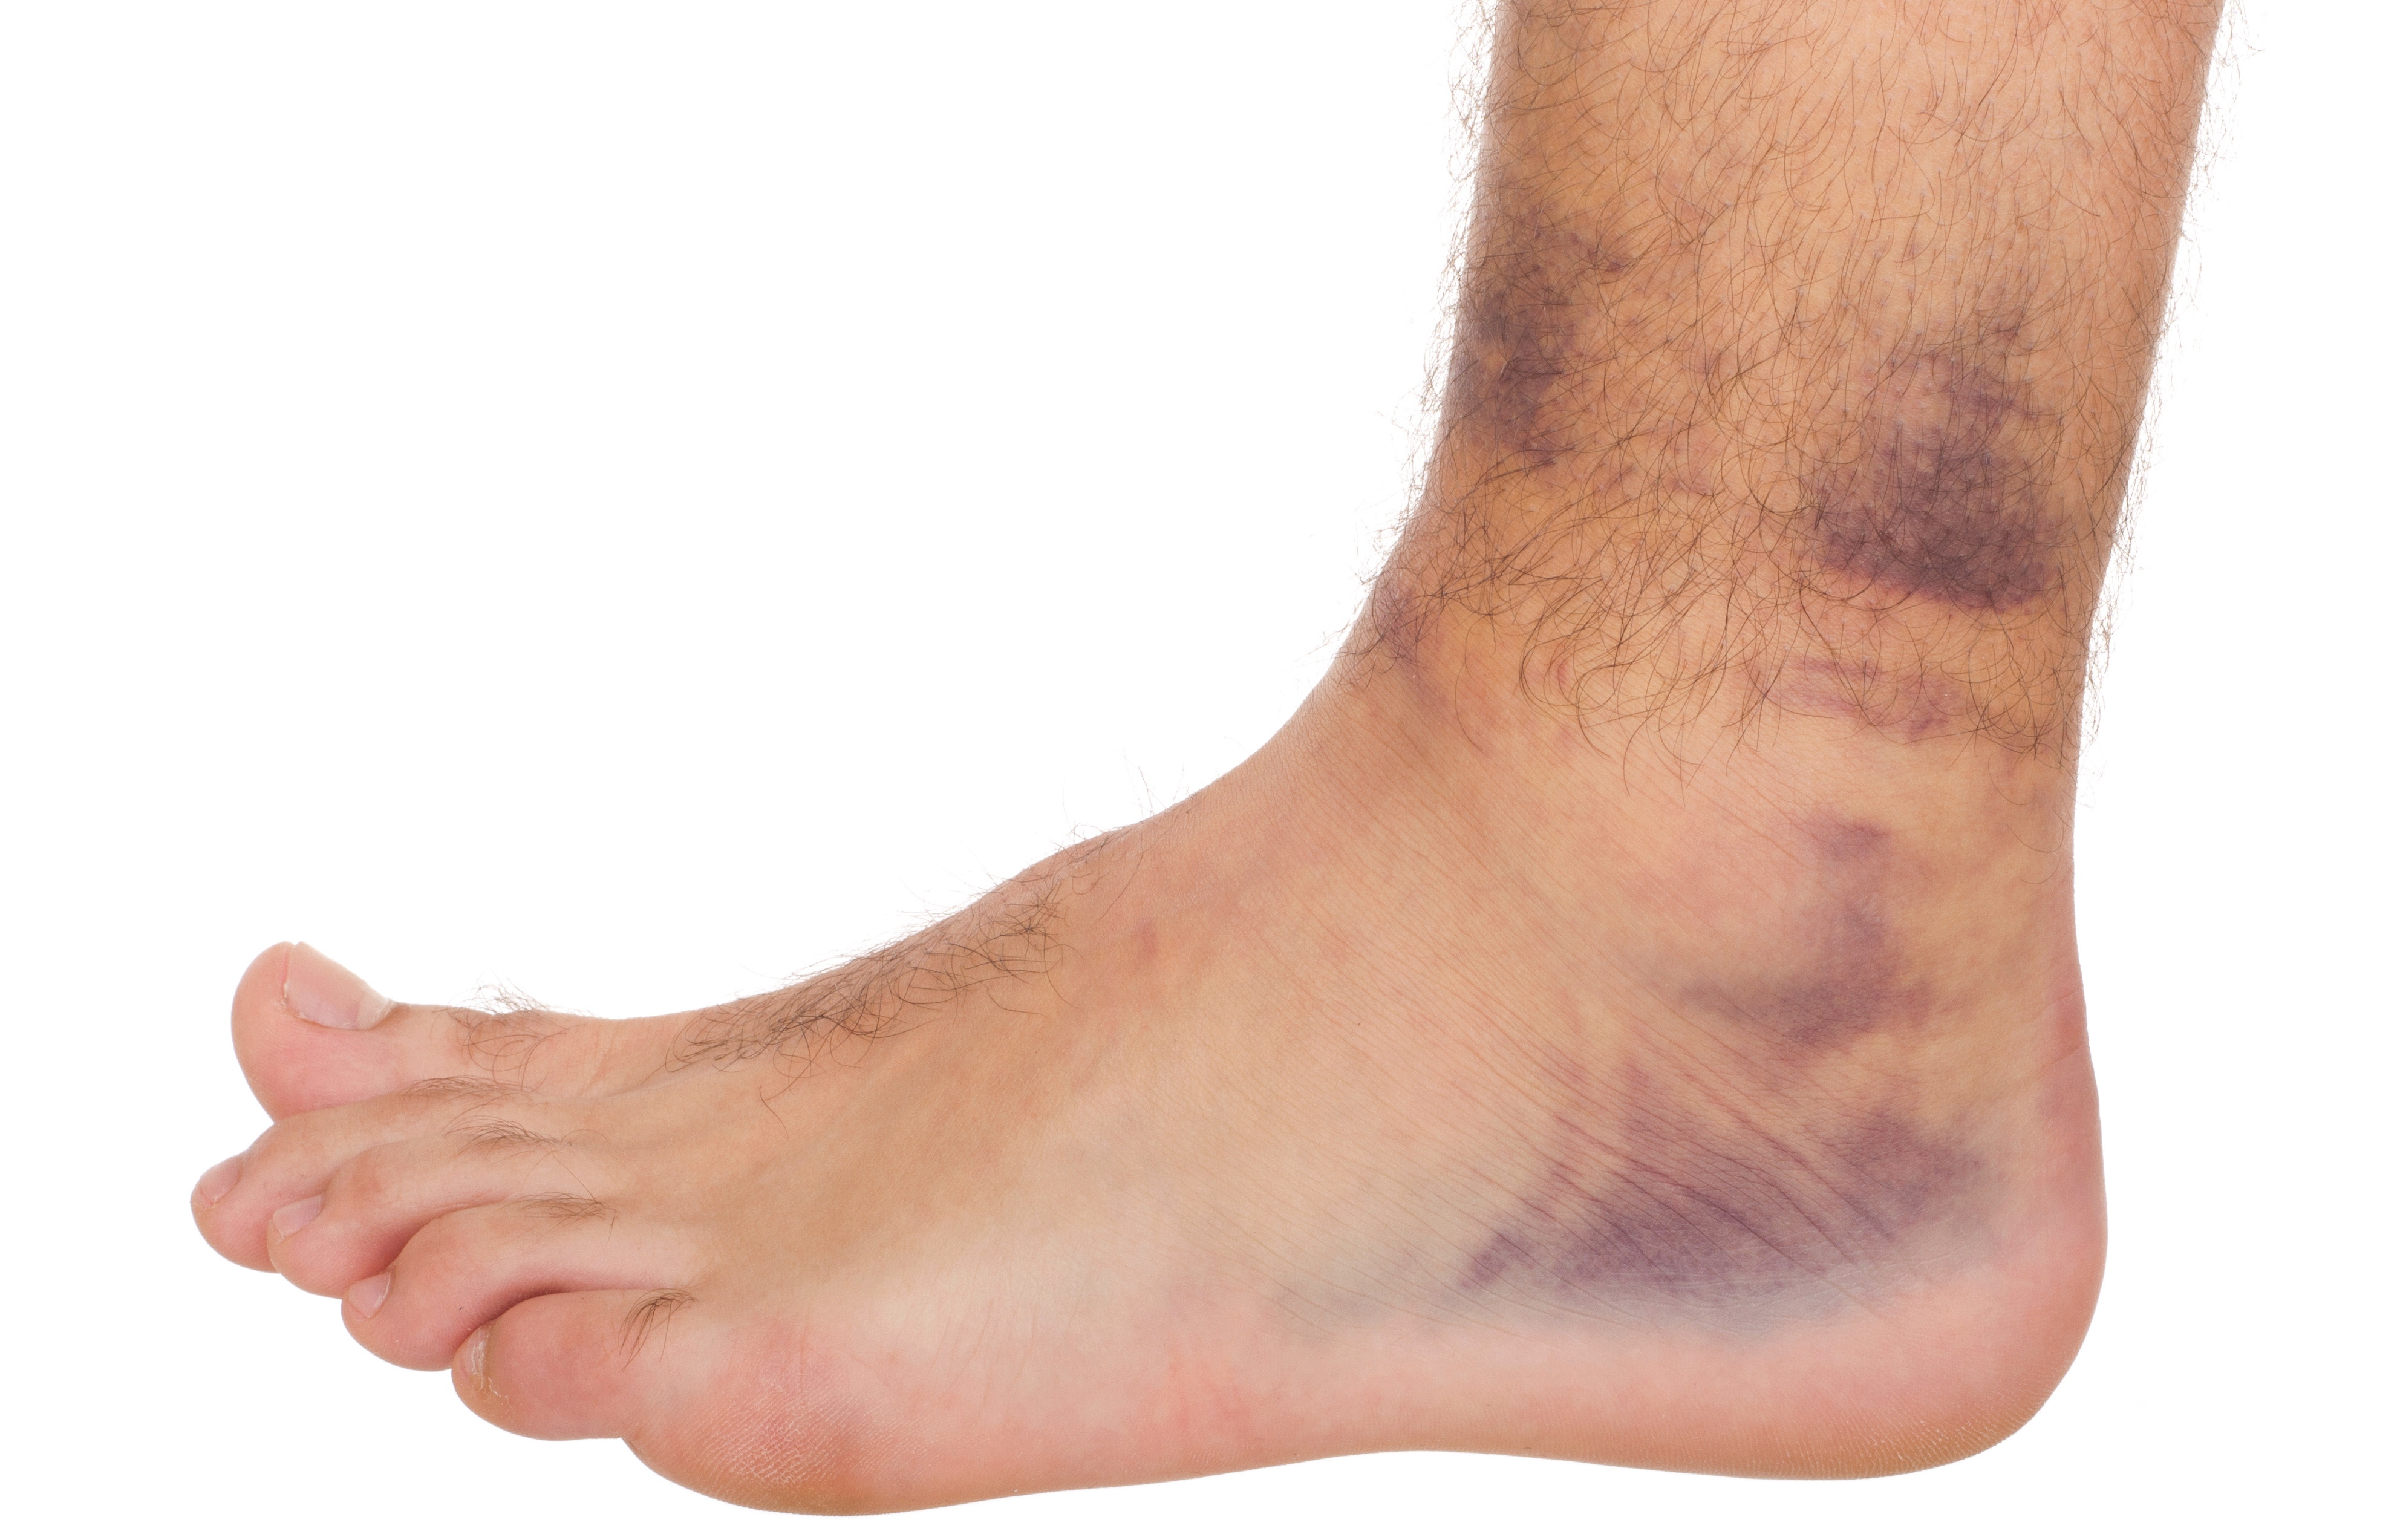 Signs Your Ankle Is Broken vs. Badly Sprained